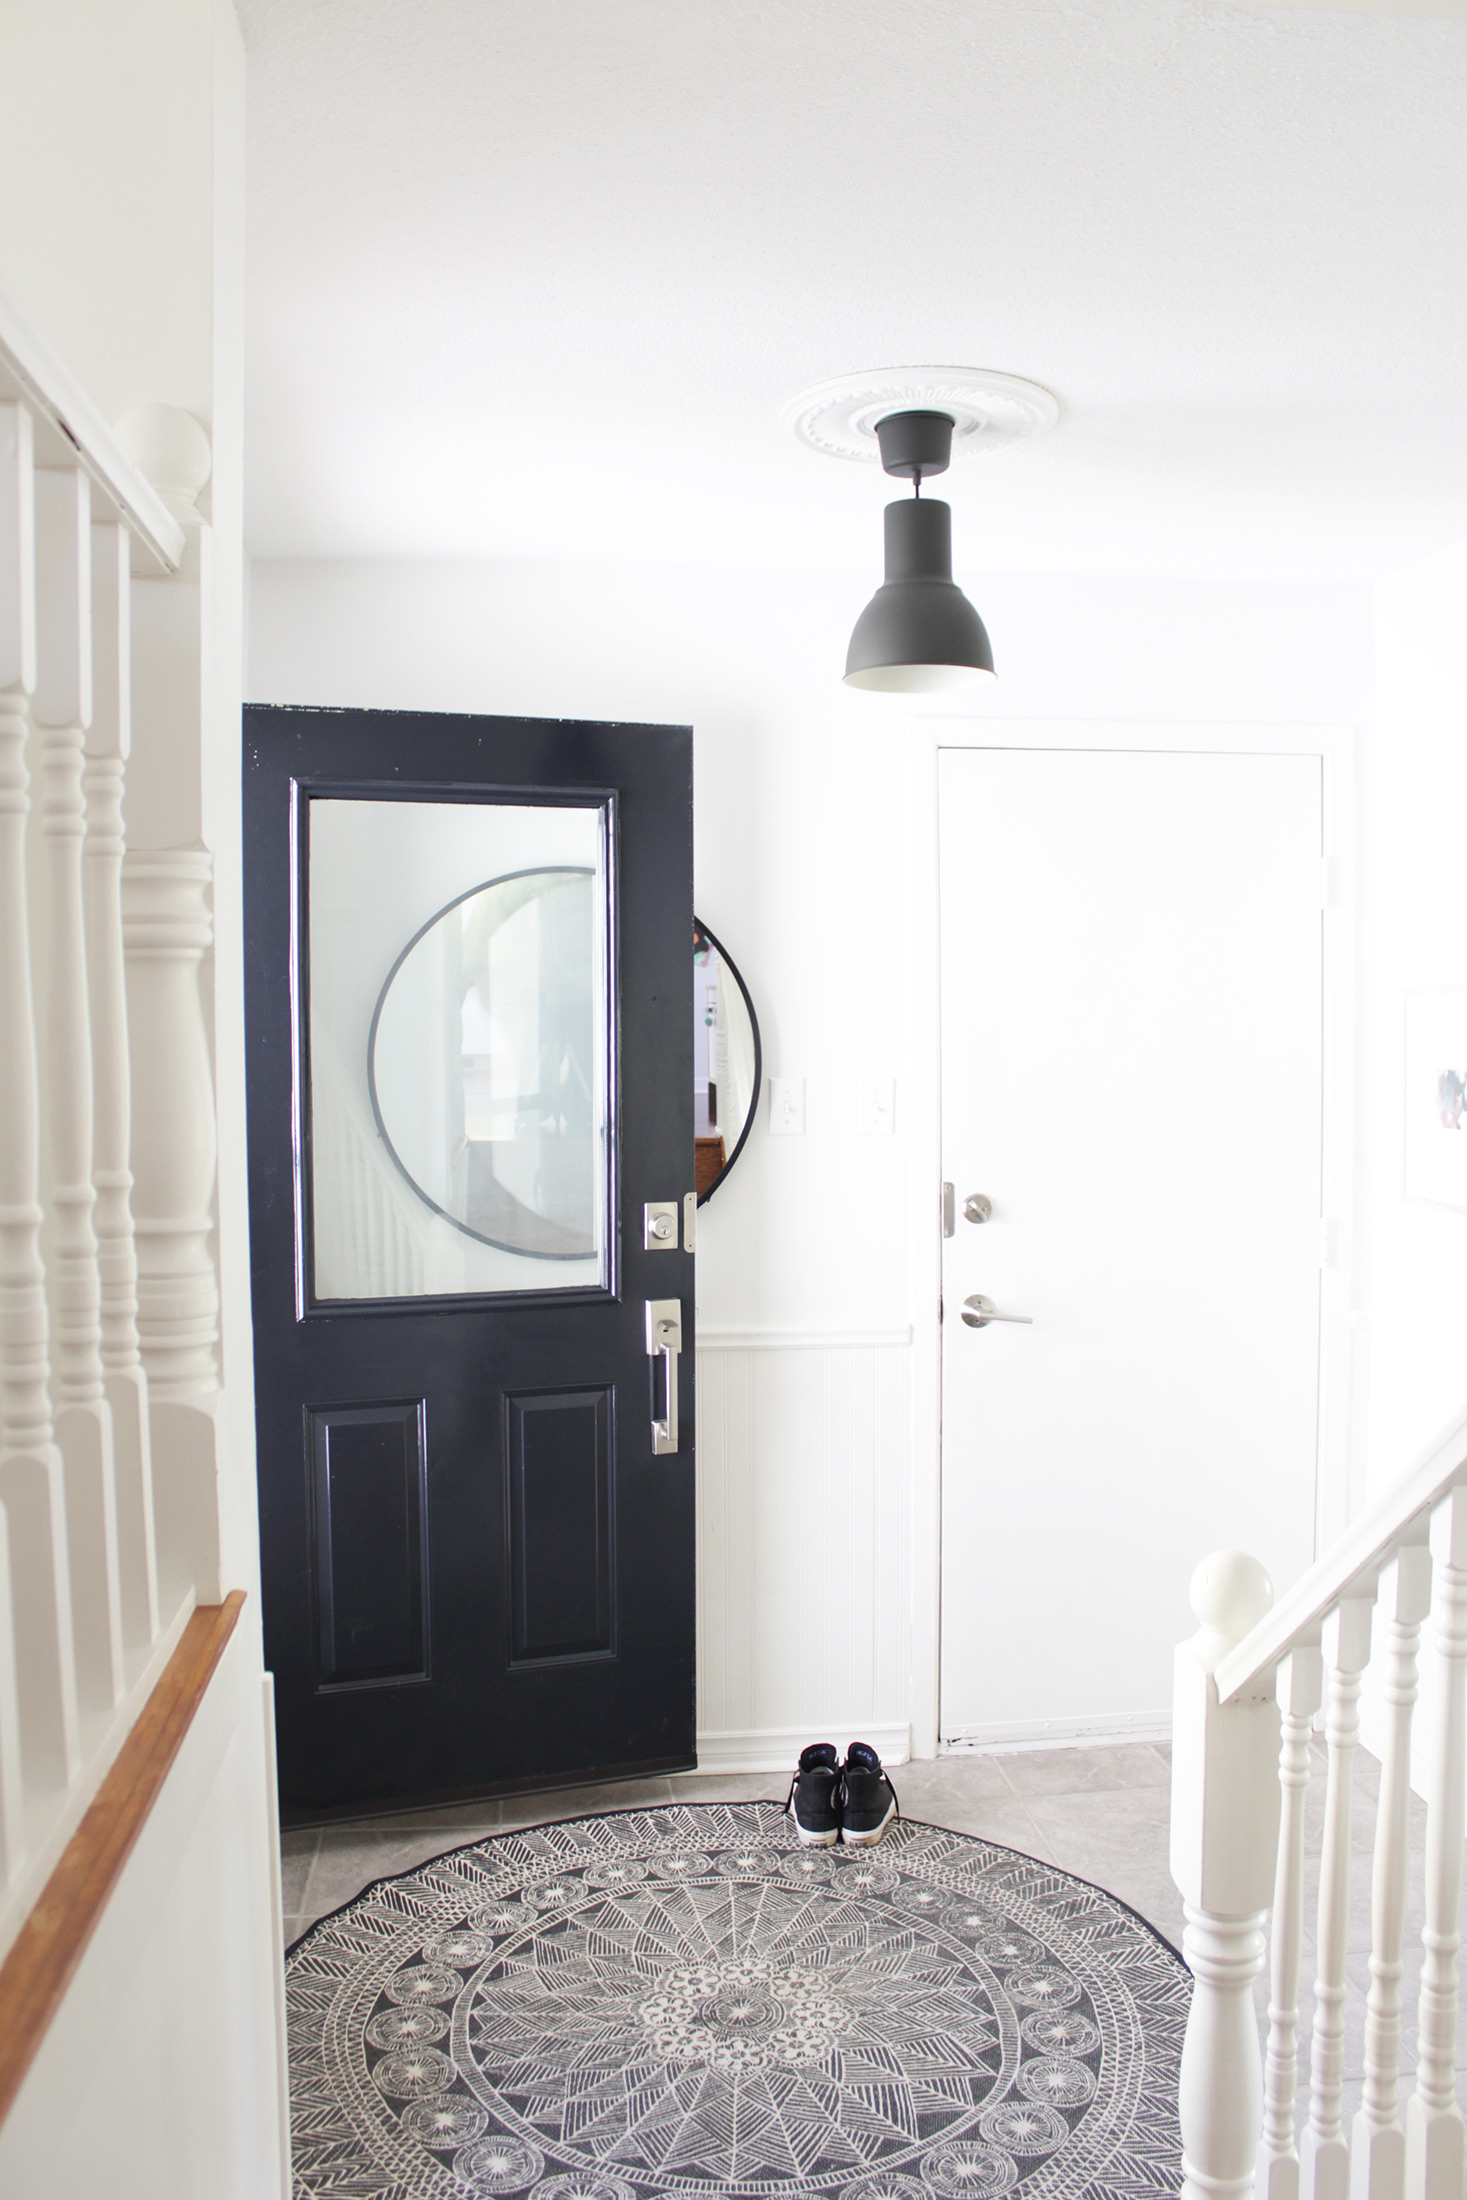 The pattern on this circular rug in the entry way is great and the large mirror is on trend.We do have similar taste and I know we would chat non stop if we were in the same room.